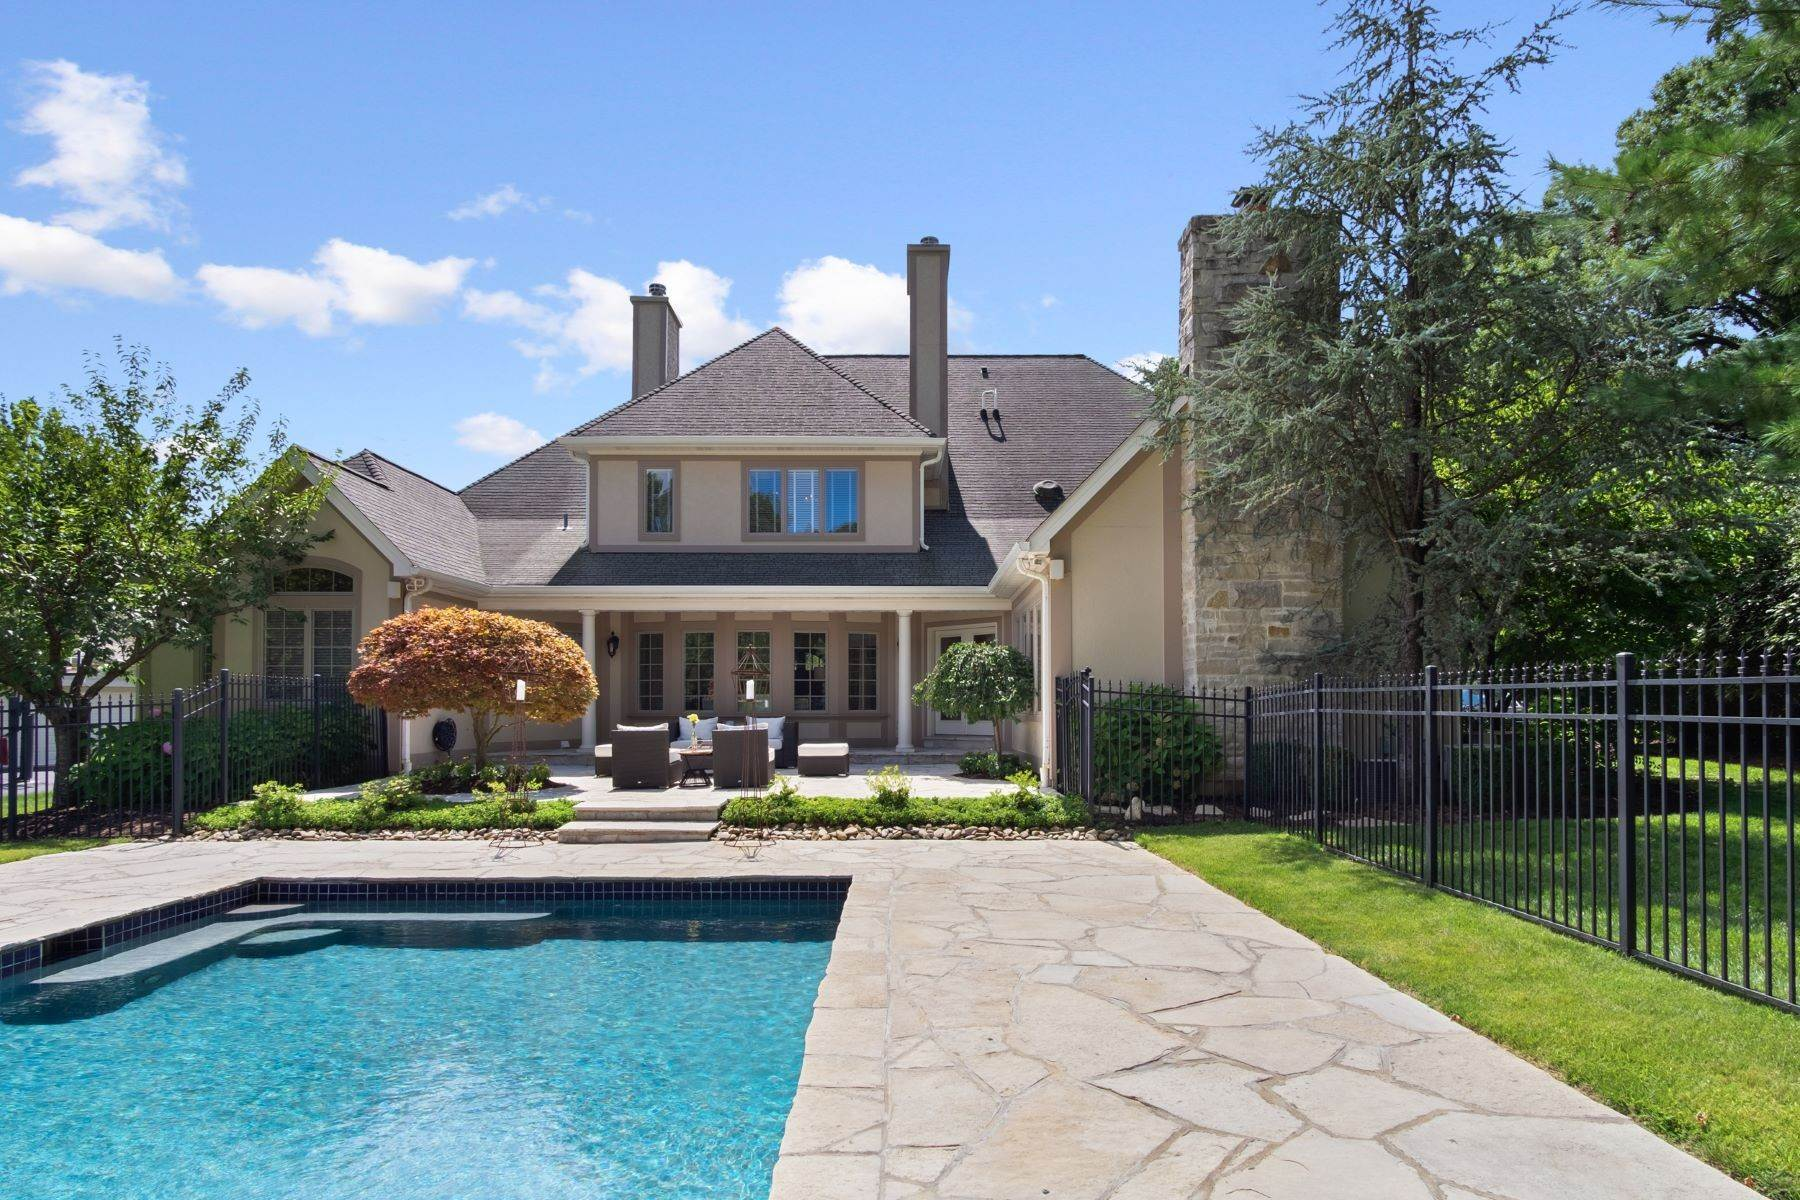 44. Single Family Homes for Sale at Outstanding Private Gated Stone 1.5 Story 10831 Ladue Road Creve Coeur, Missouri 63141 United States